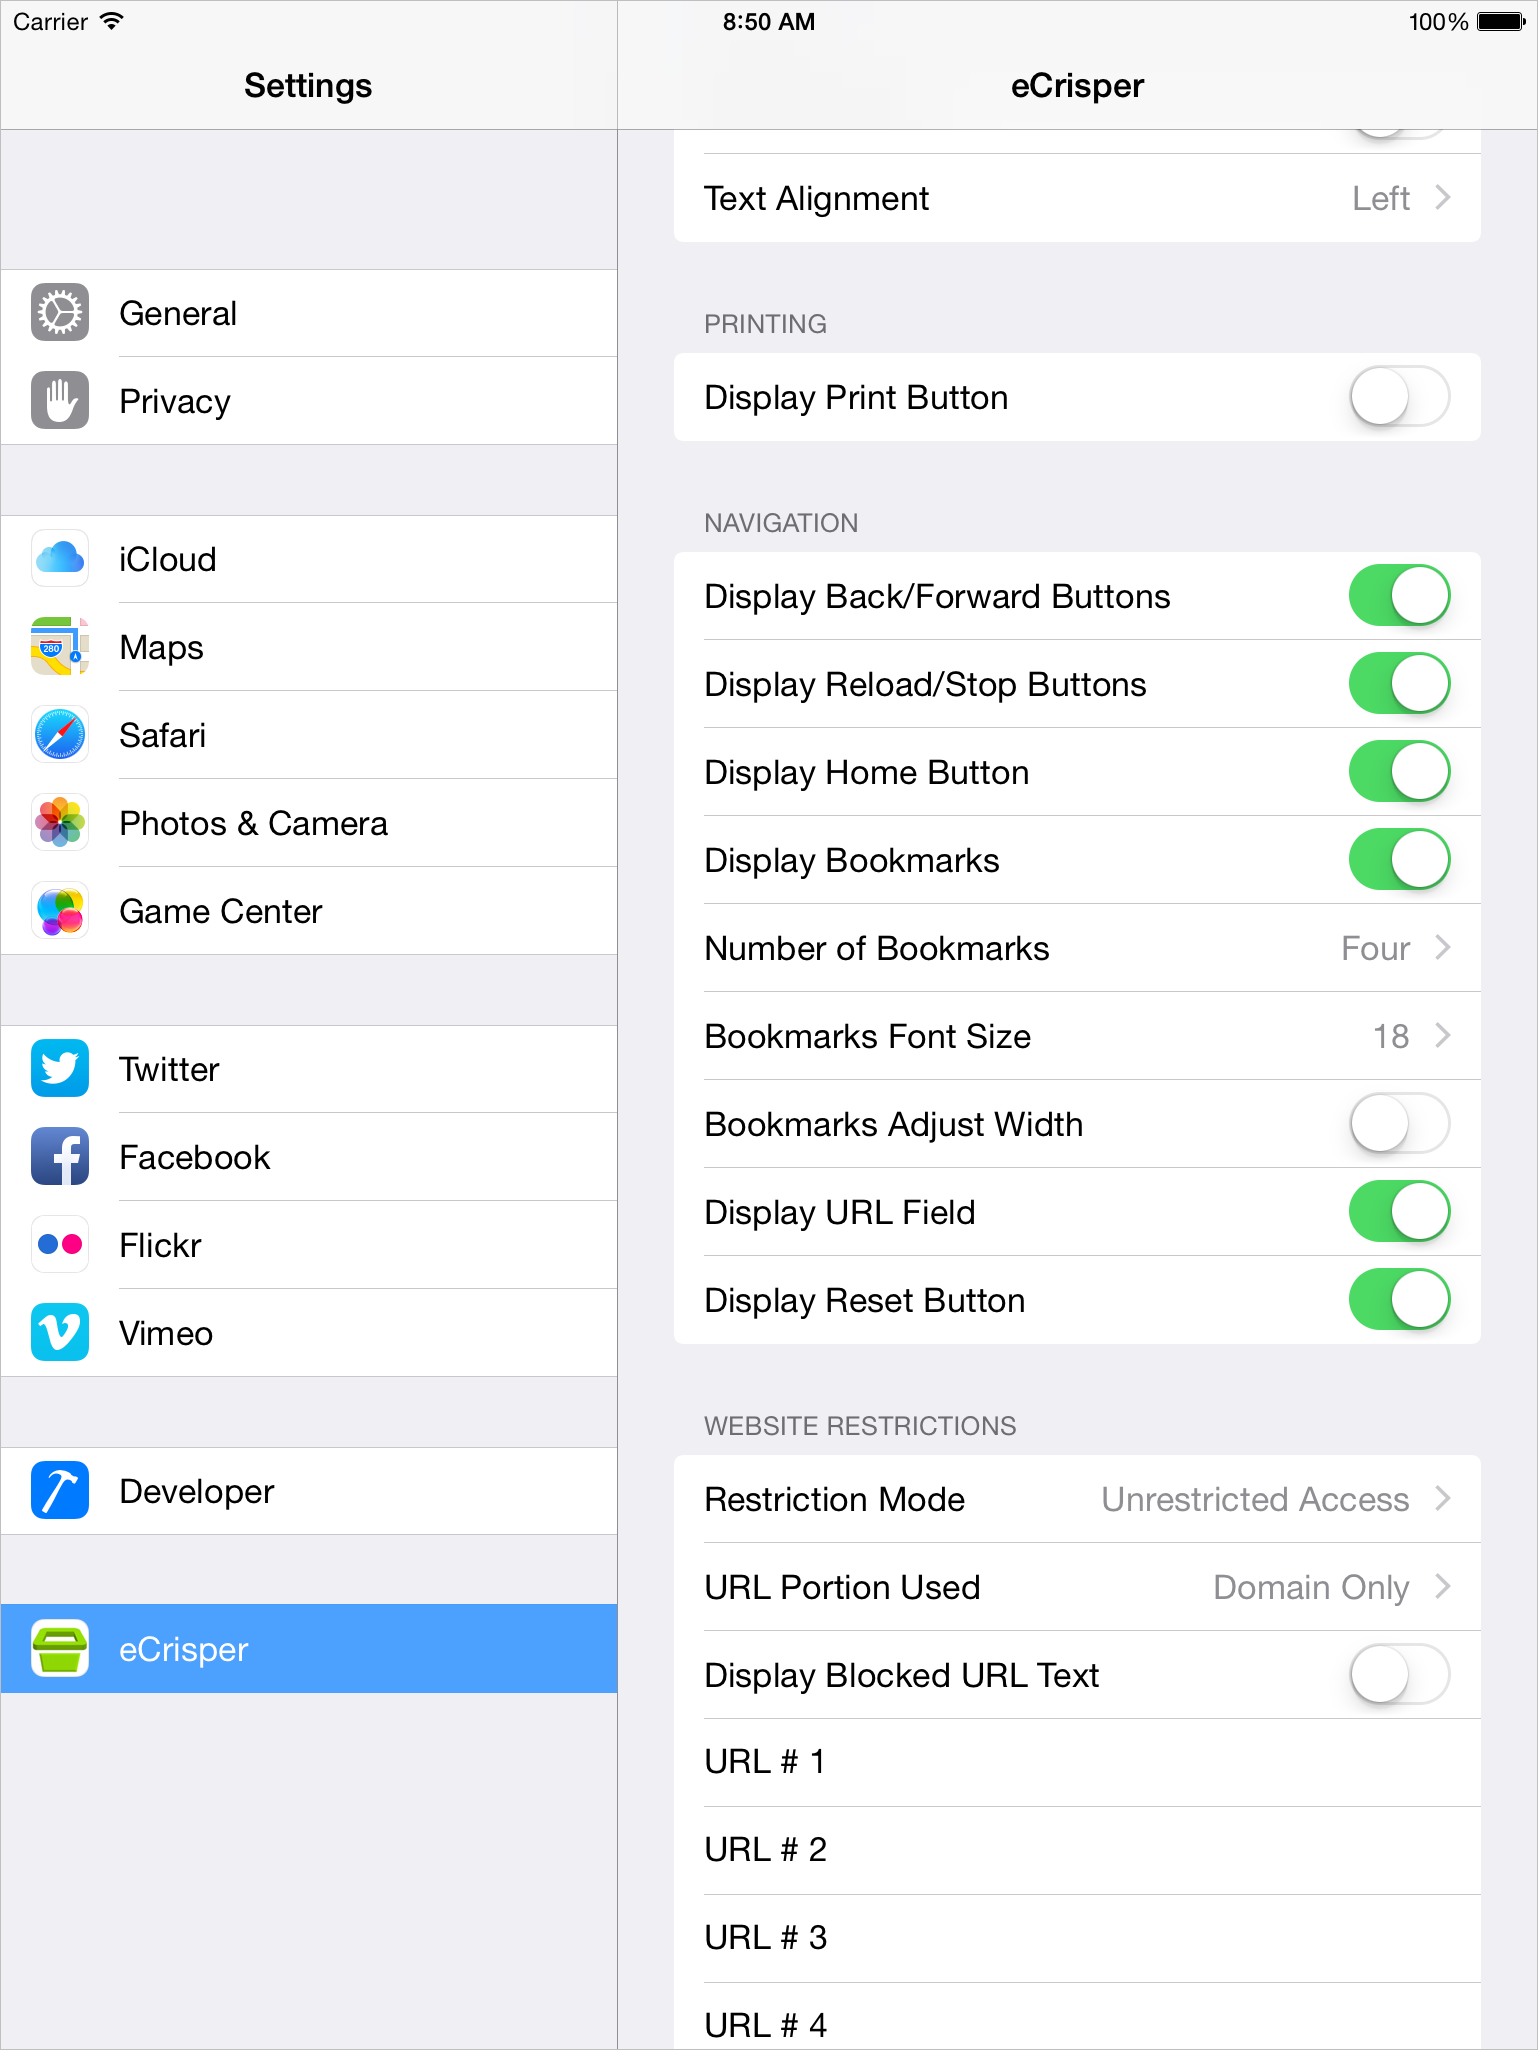 Kiosk Software for iPad - Settings - Screen 2